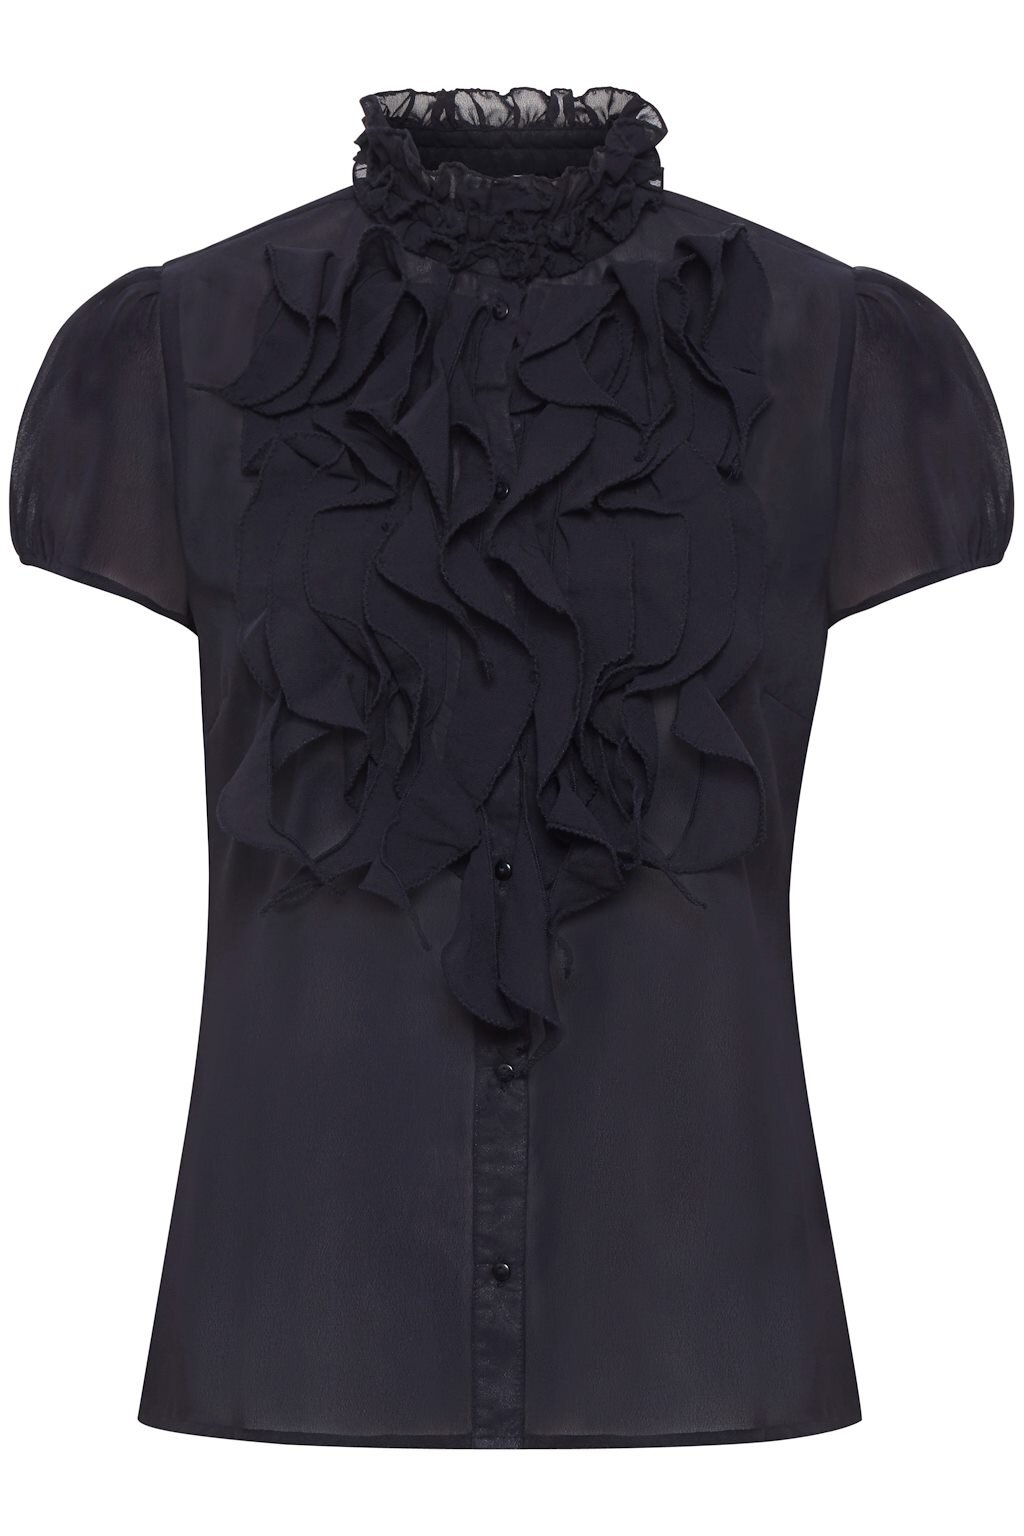 Lilly shirt Krås - Black